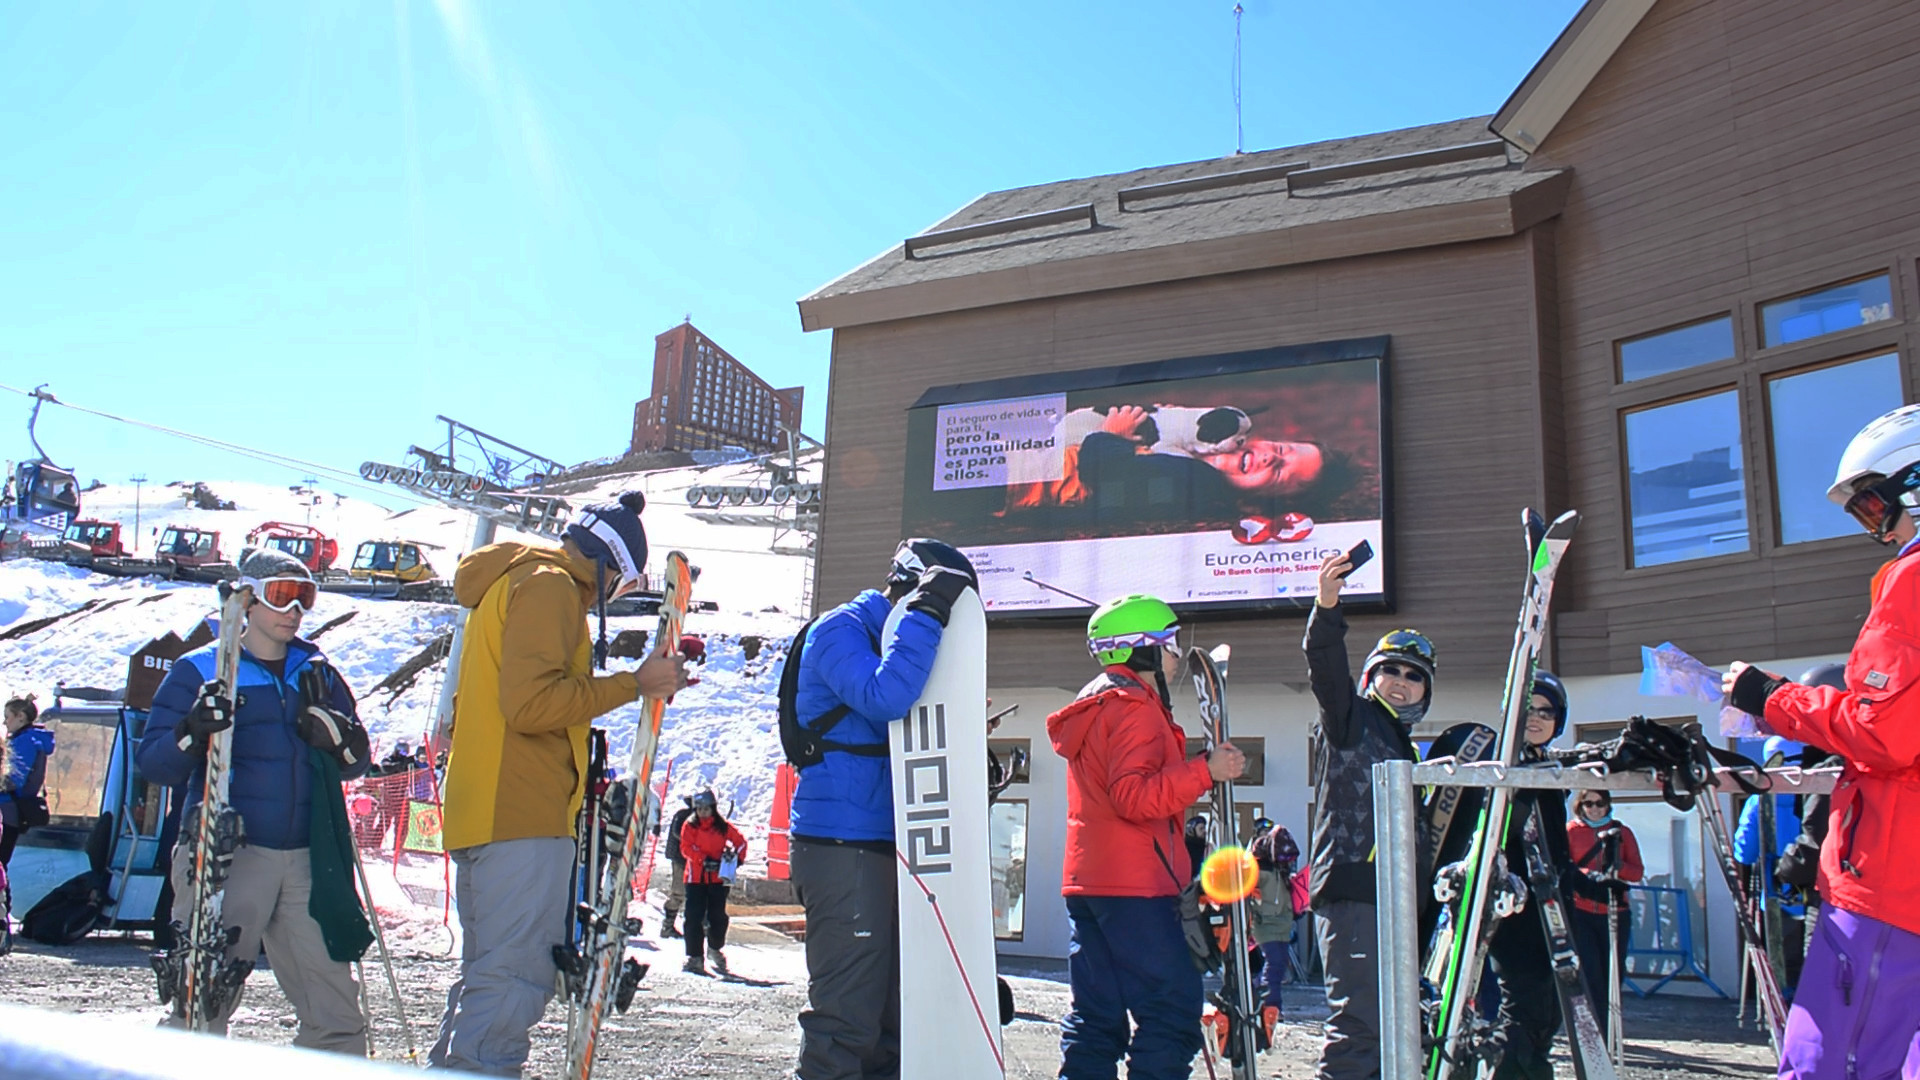 PANTALLA LED VALLE NEVADO